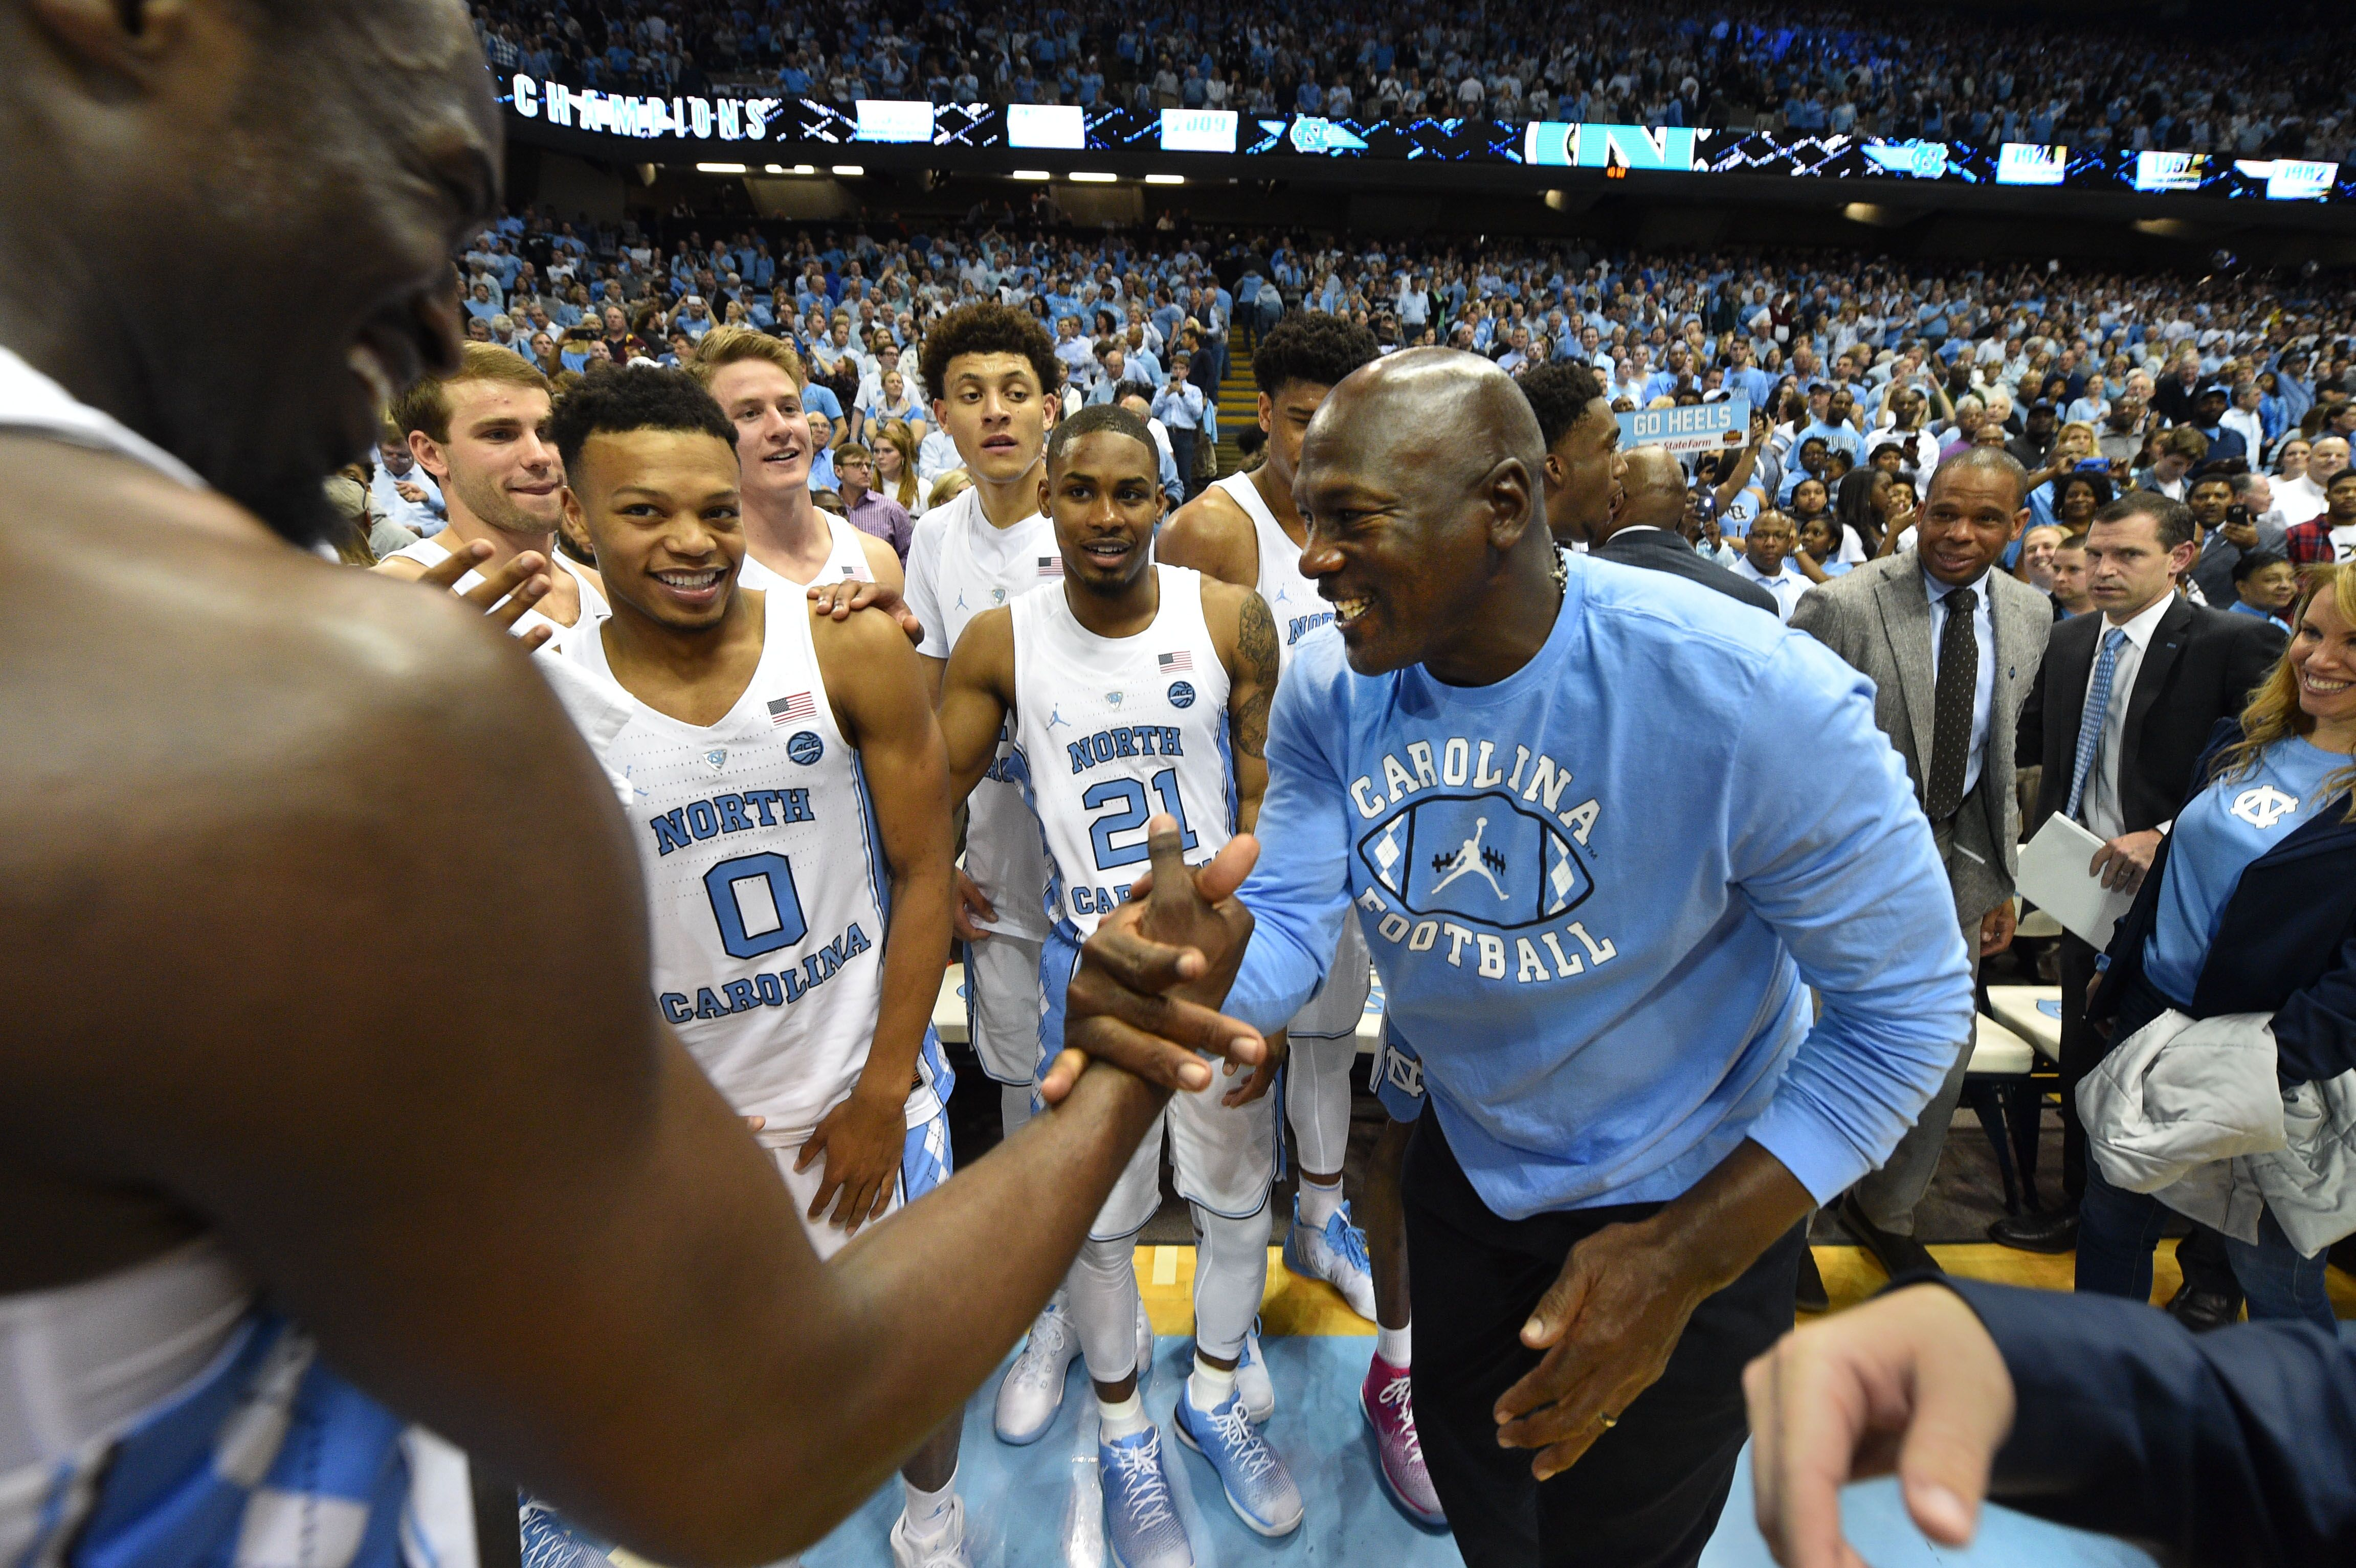 UNC Basketball: Win over Duke sparks party on Franklin Street